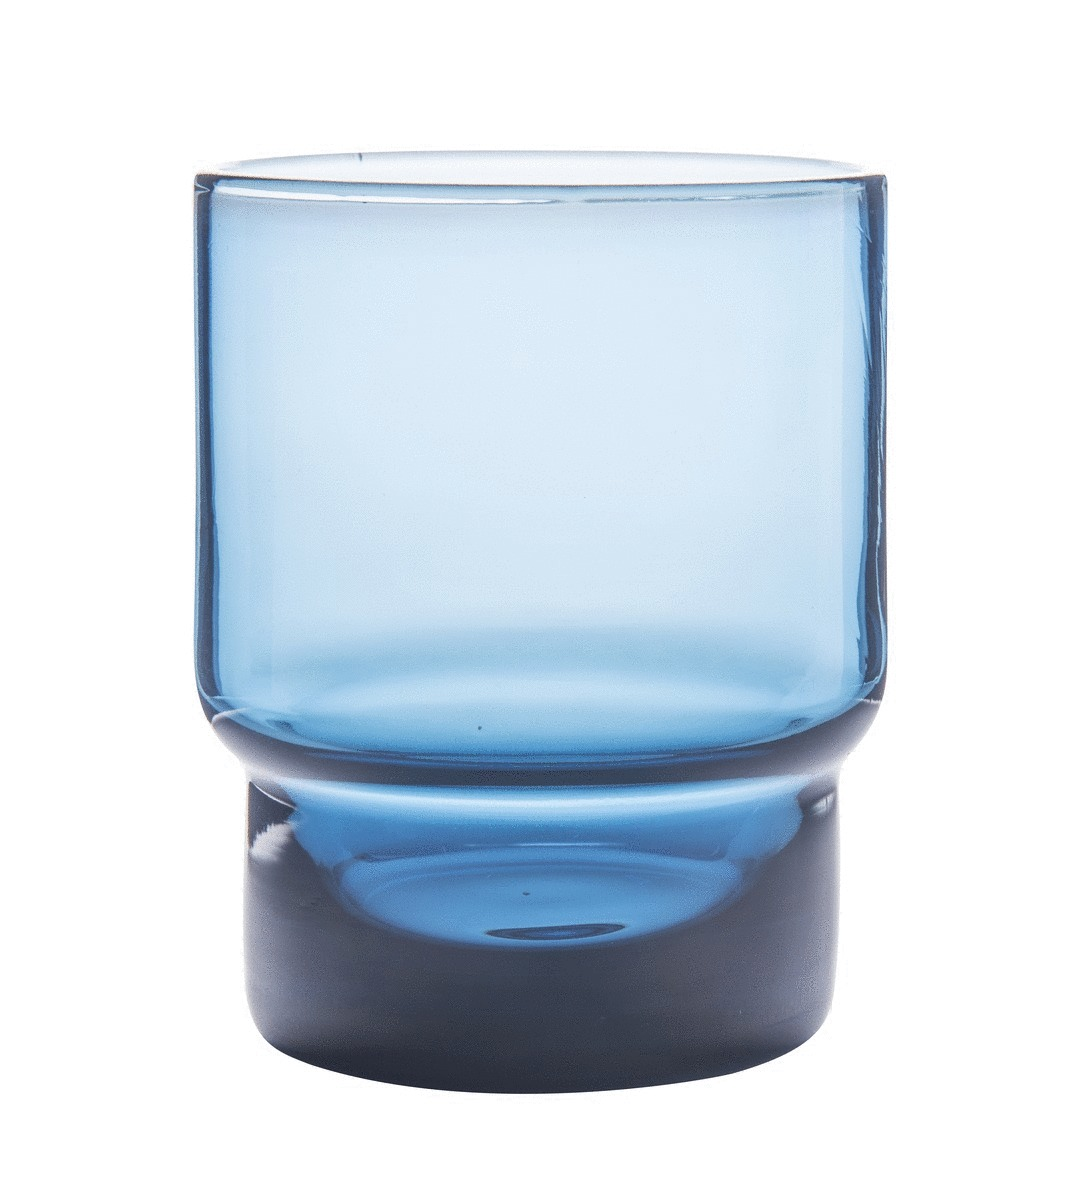 Gobelet forme basse bleu nuit 22 cl Artic Essentials Glassware